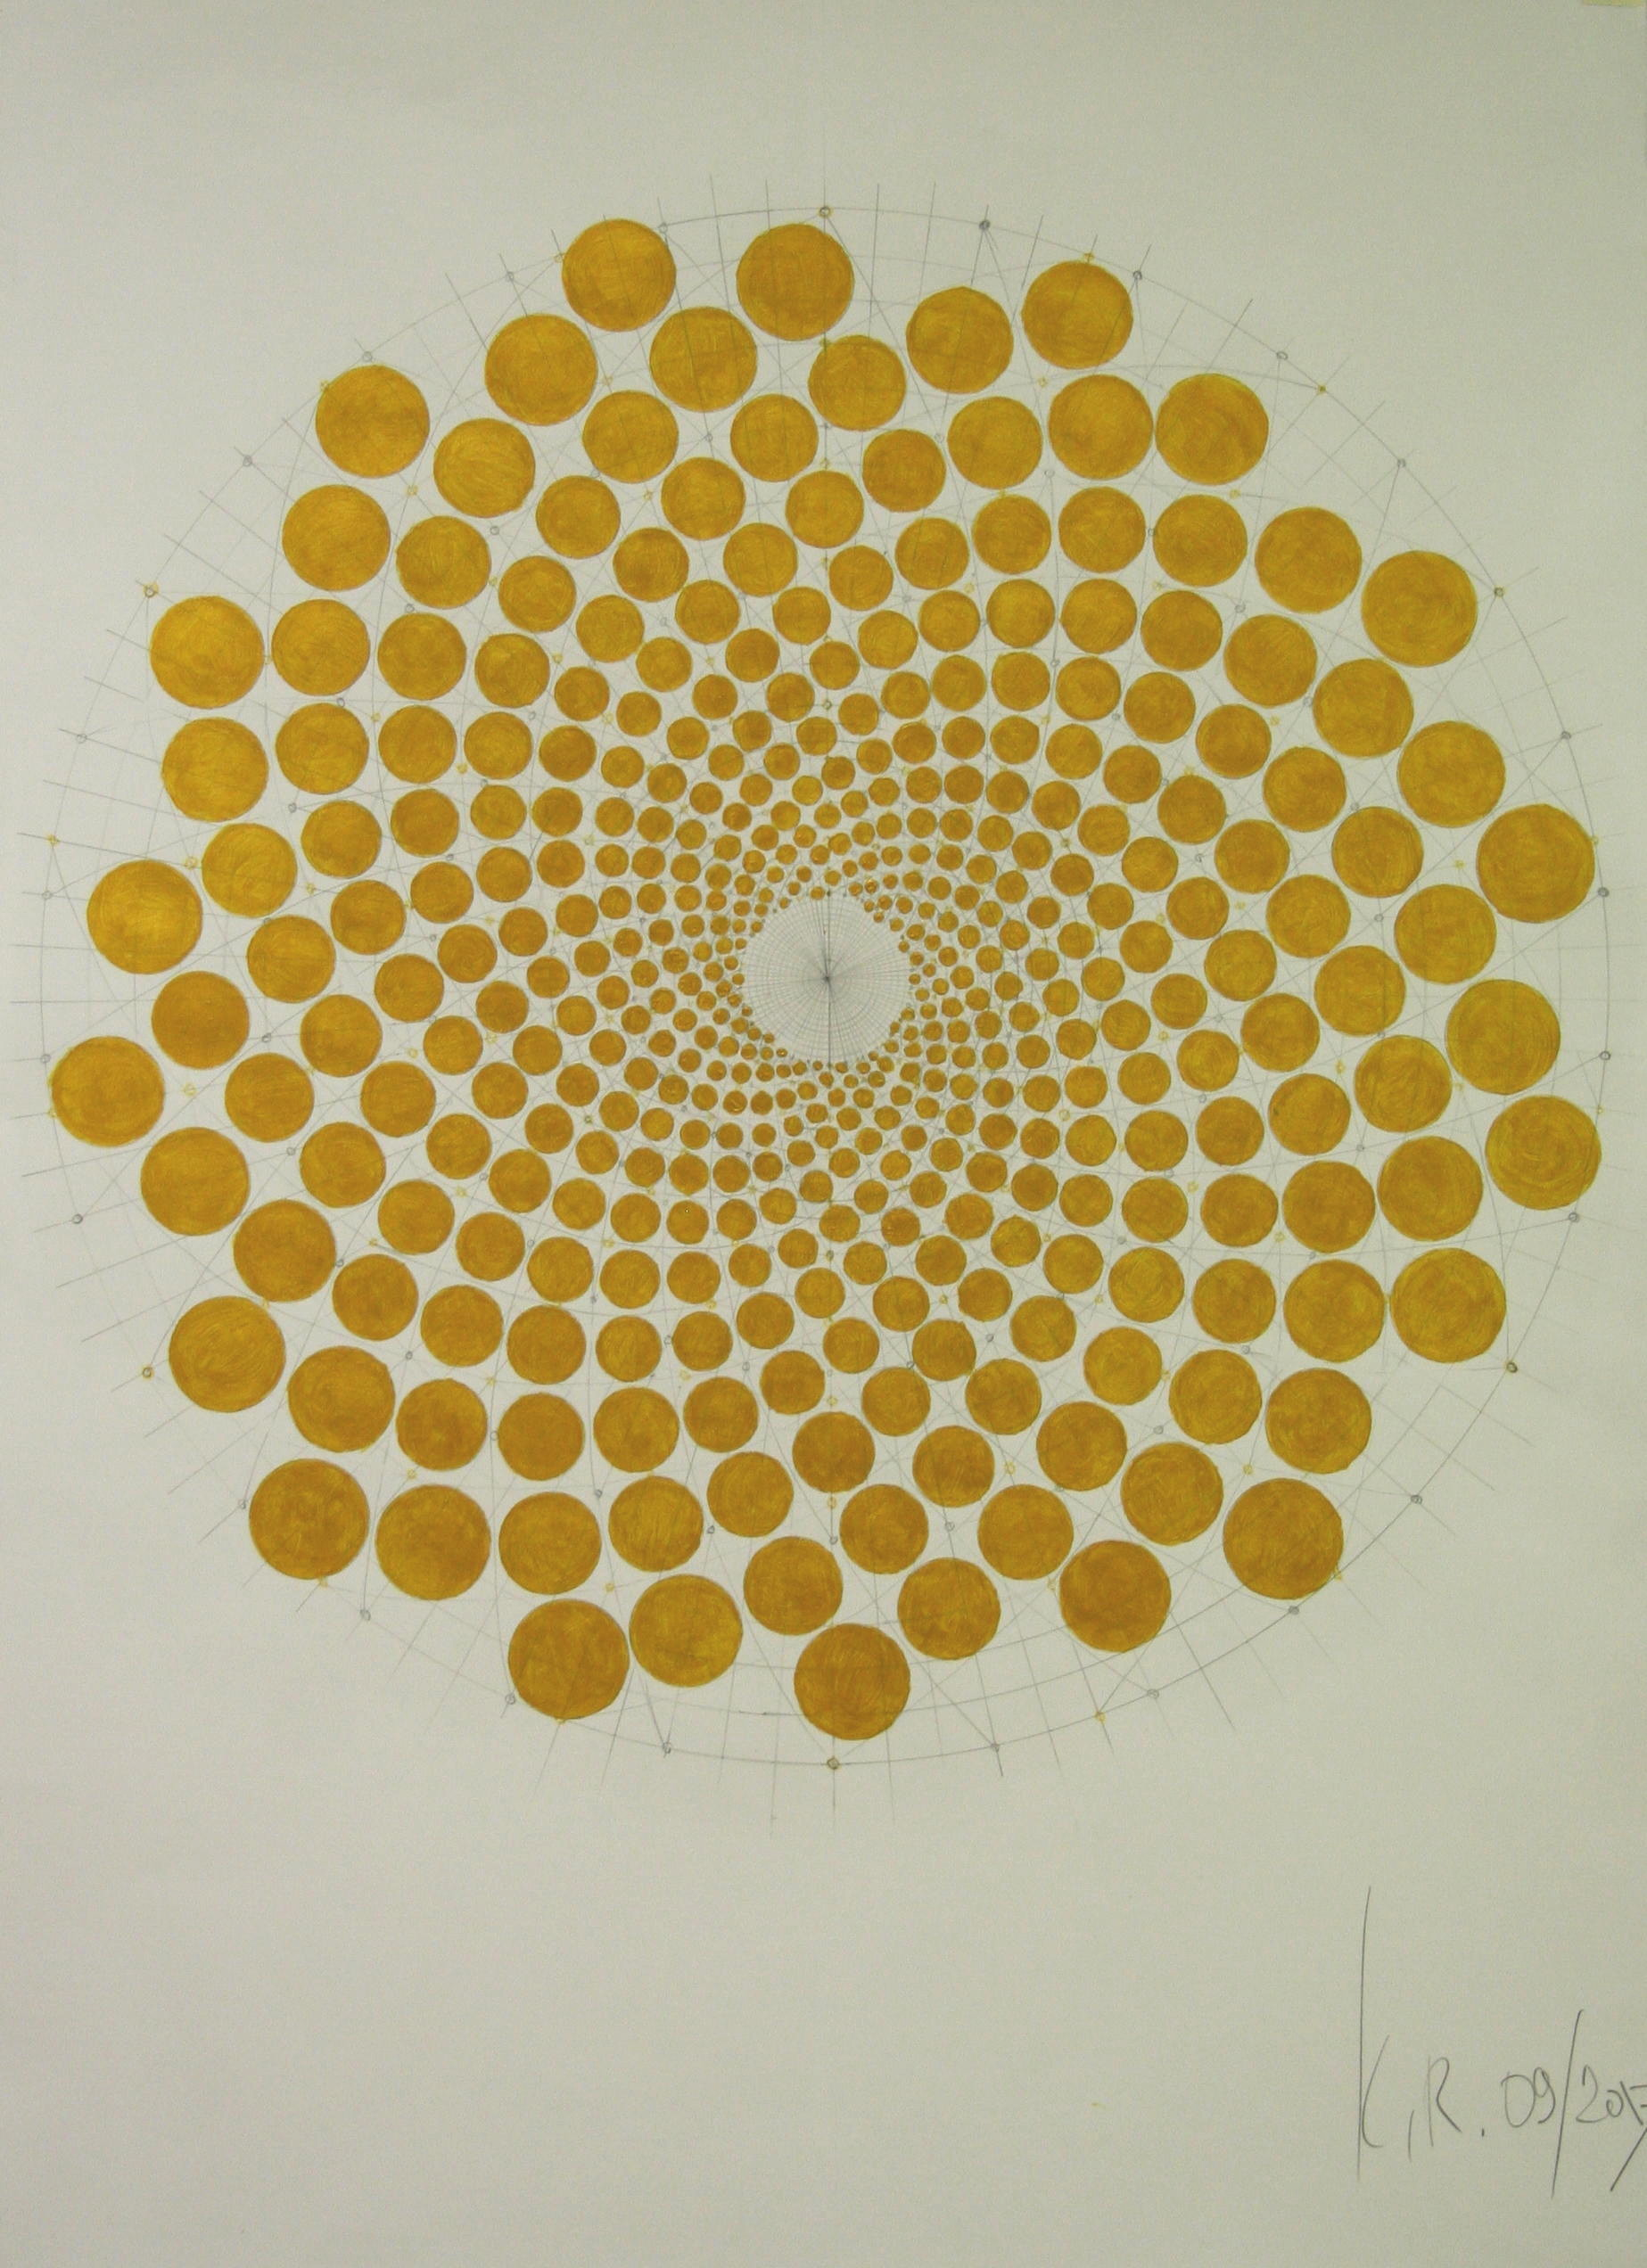 drawing of golden spiral